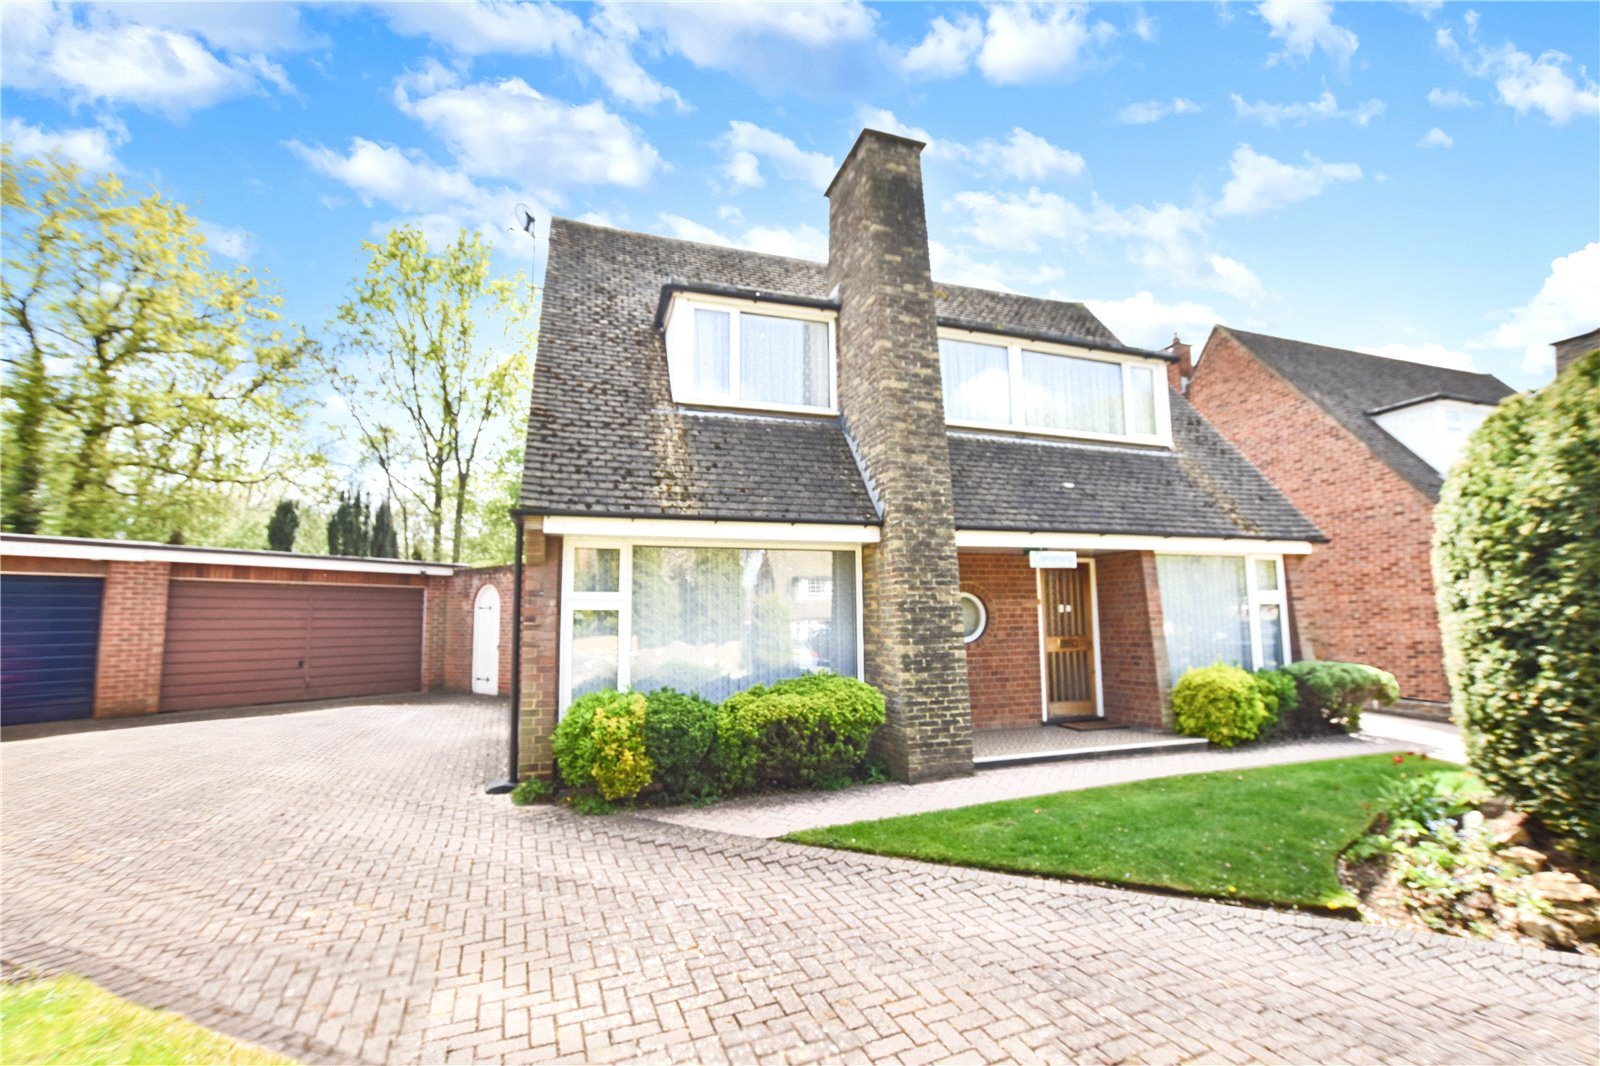 Park Way, Joydens Wood, Bexley, Kent, DA5